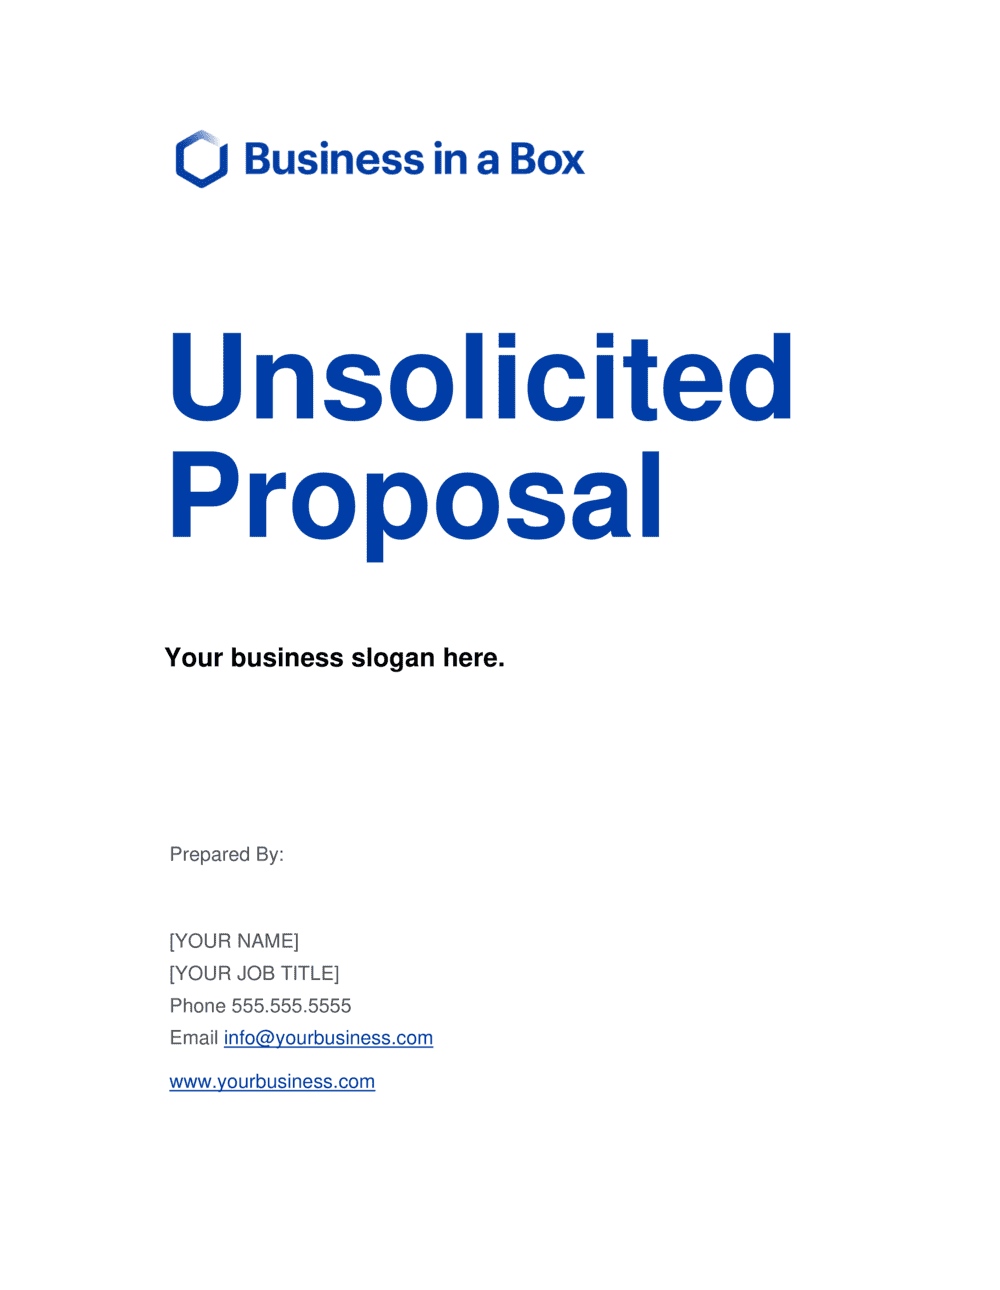 Business-in-a-Box's Unsolicited Proposal Template